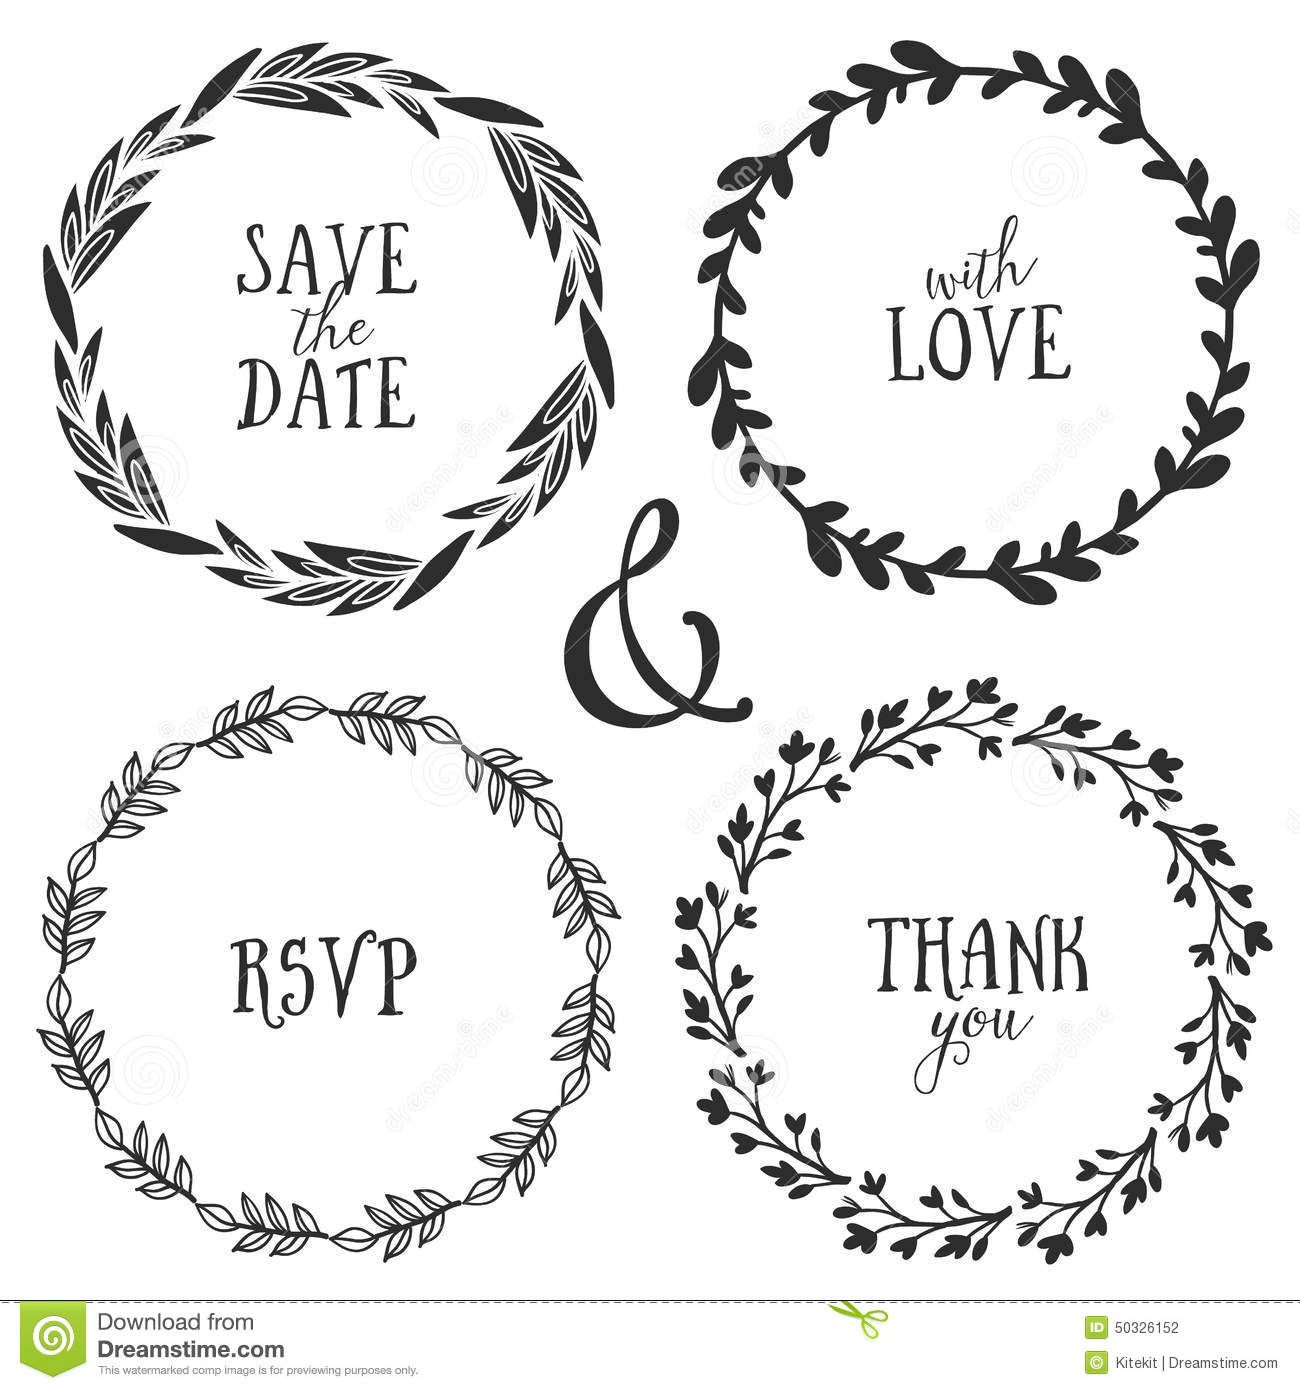 Hand Drawn Rustic Vintage Wreaths Lettering Floral Vector Graphic Nature Design Elements 50326152 Jpg 1300 13 How To Draw Hands Wreath Clip Art Vintage Wreath